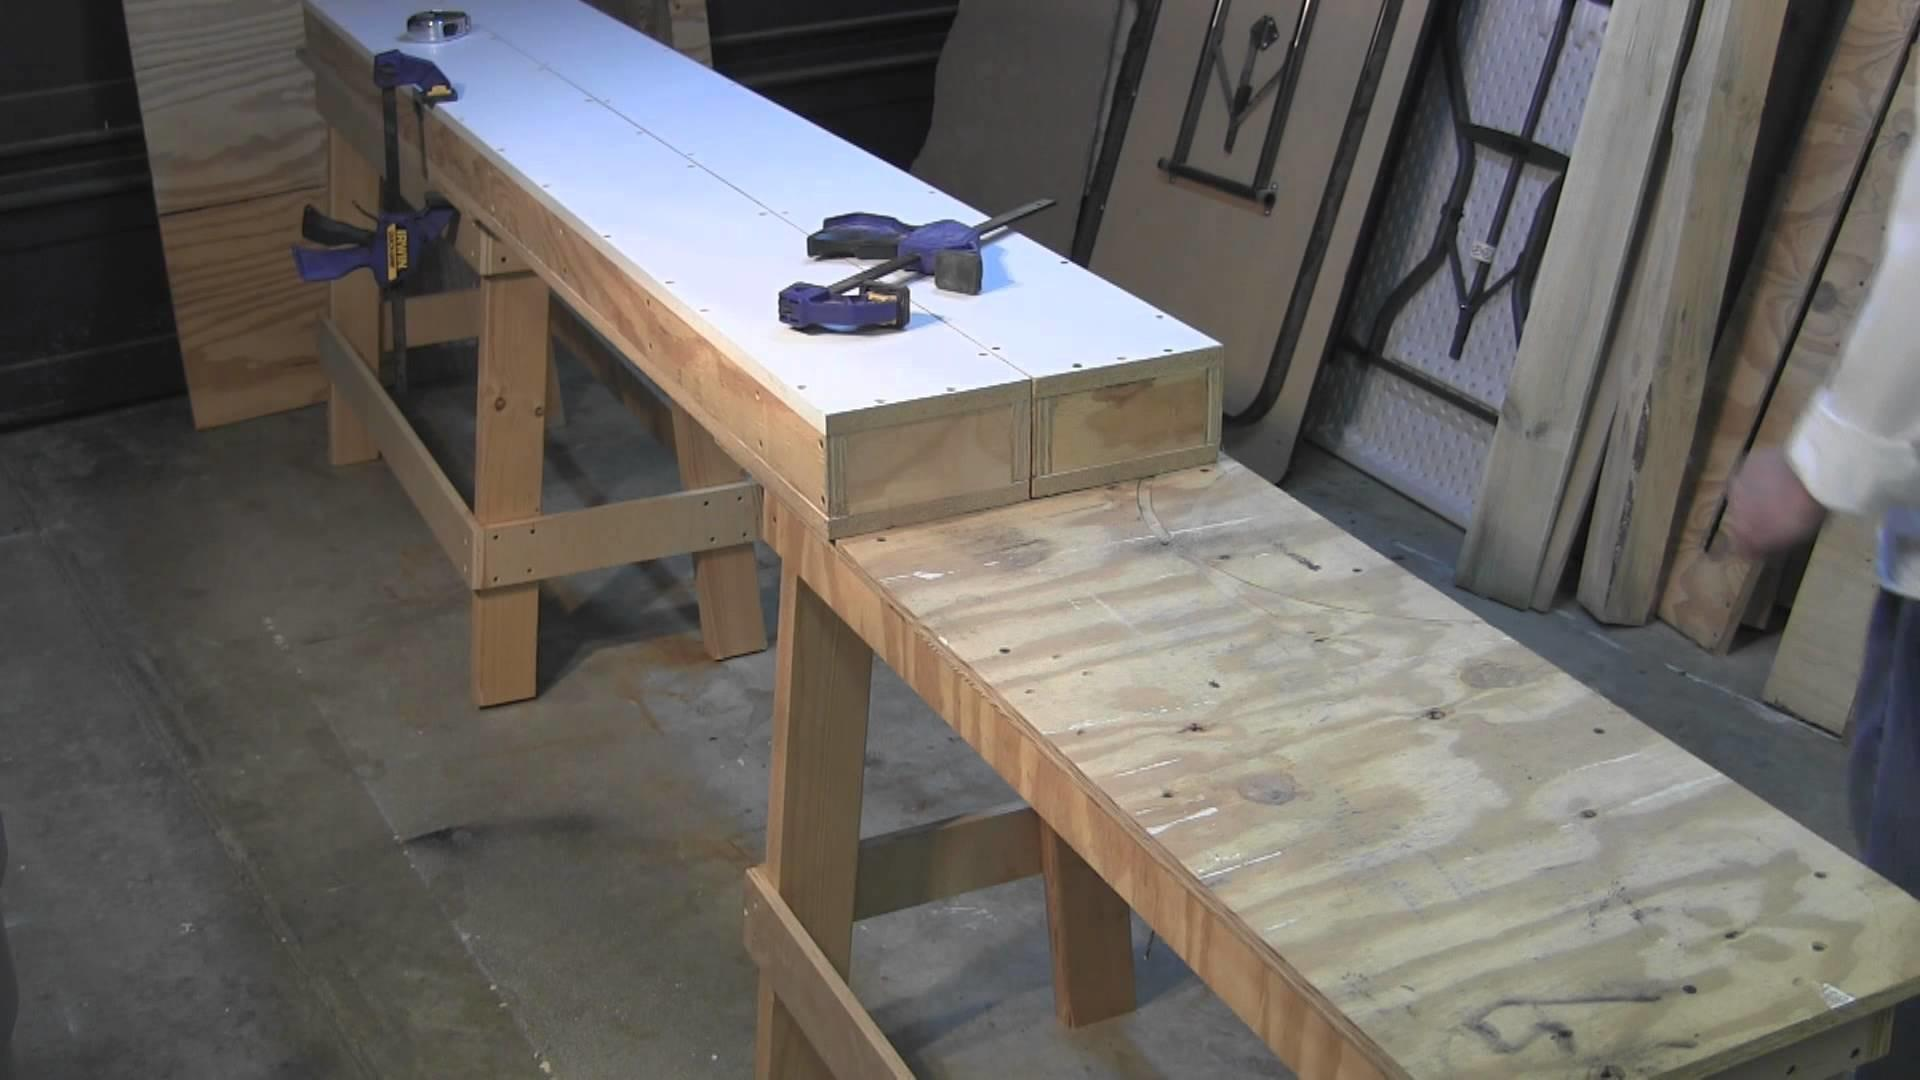 Why Need Build New Portable Modular Work Bench